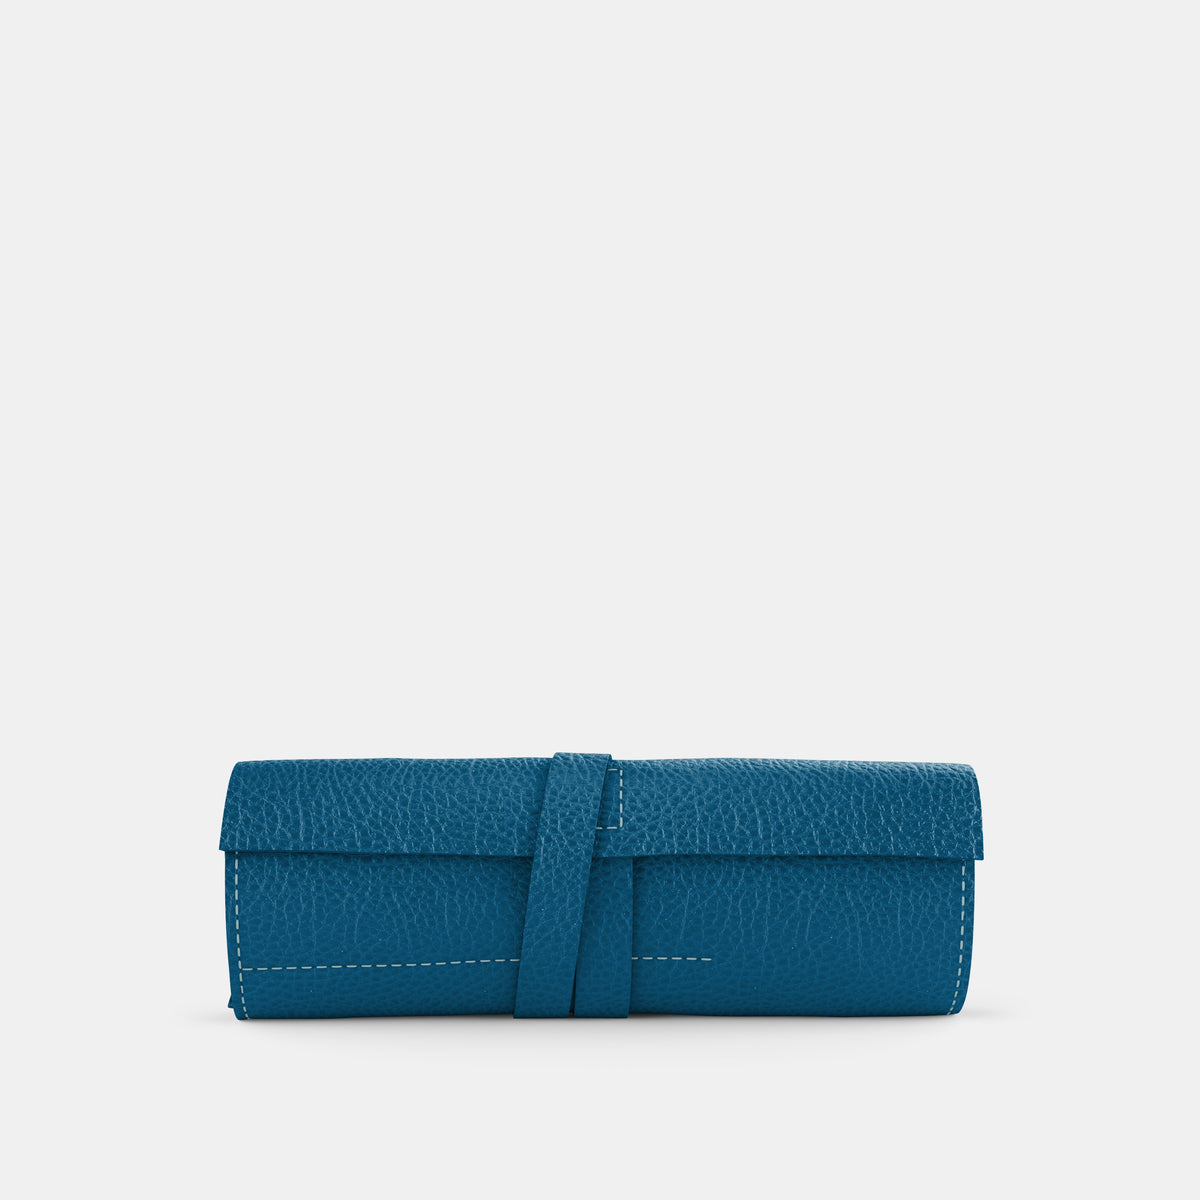 Leather Roll - Turquoise and Orange - RYAN London